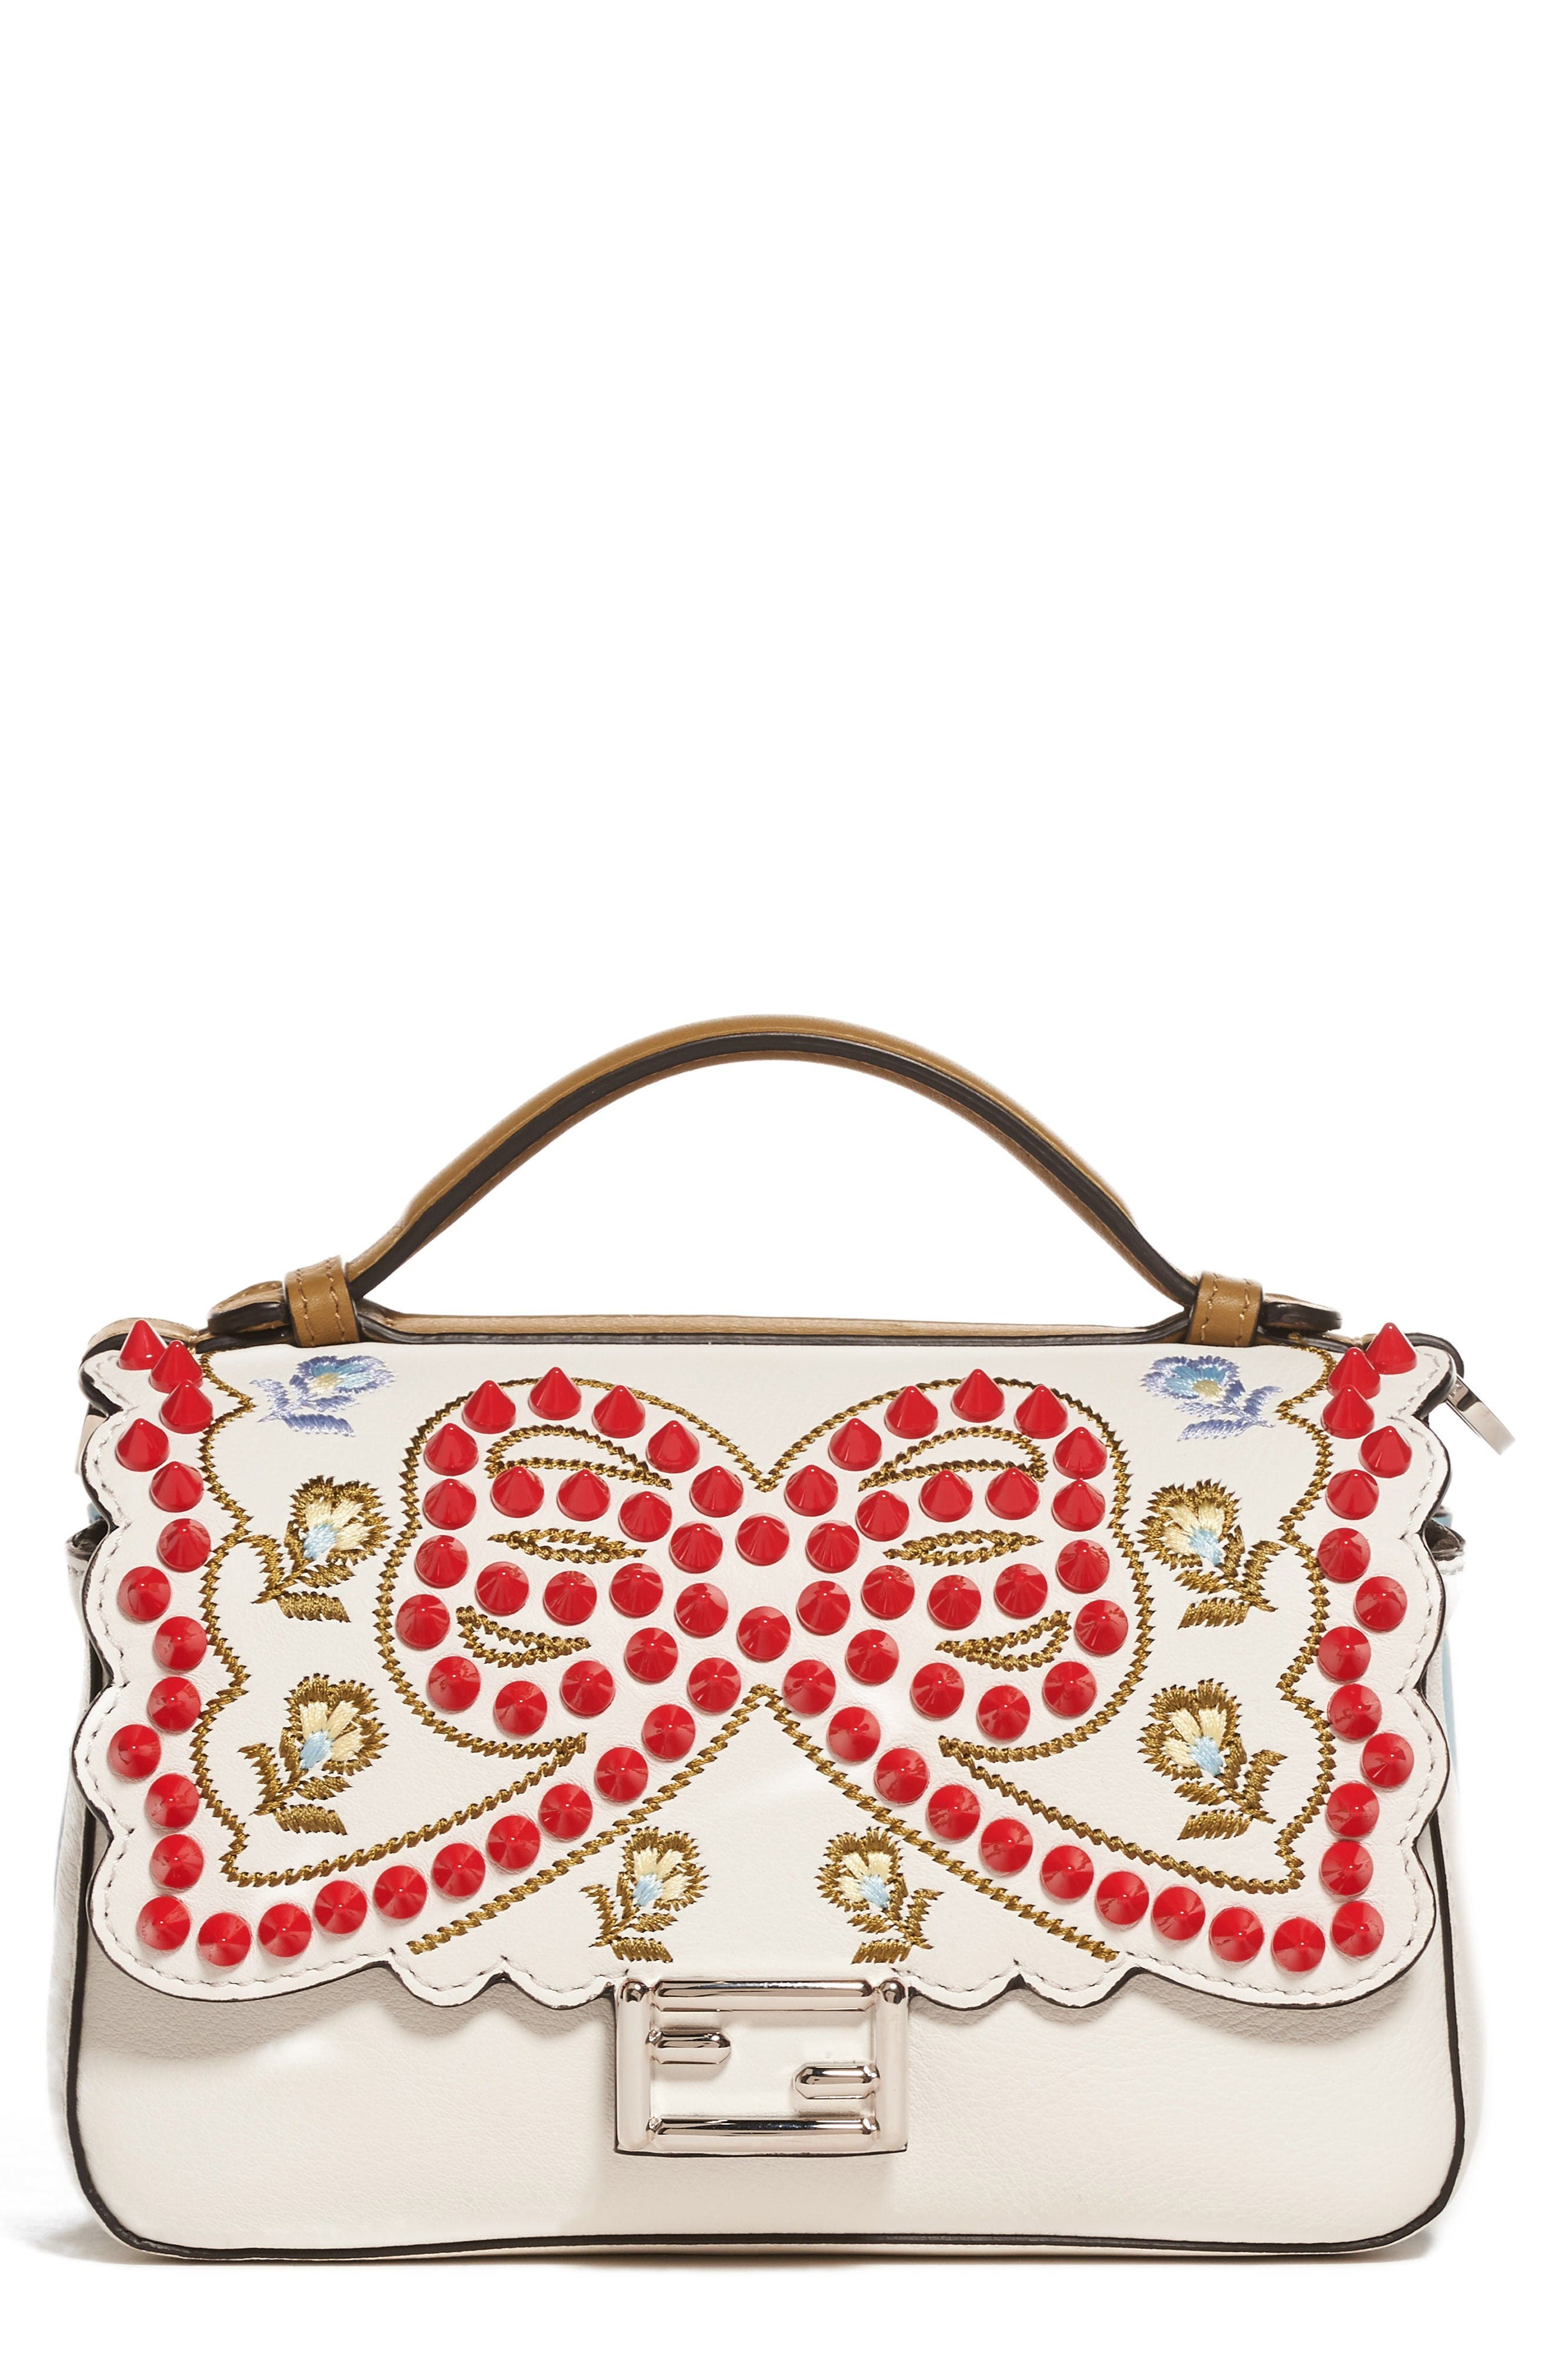 Alternate Image 1 Selected - Fendi Double Micro Studded Leather Baguette